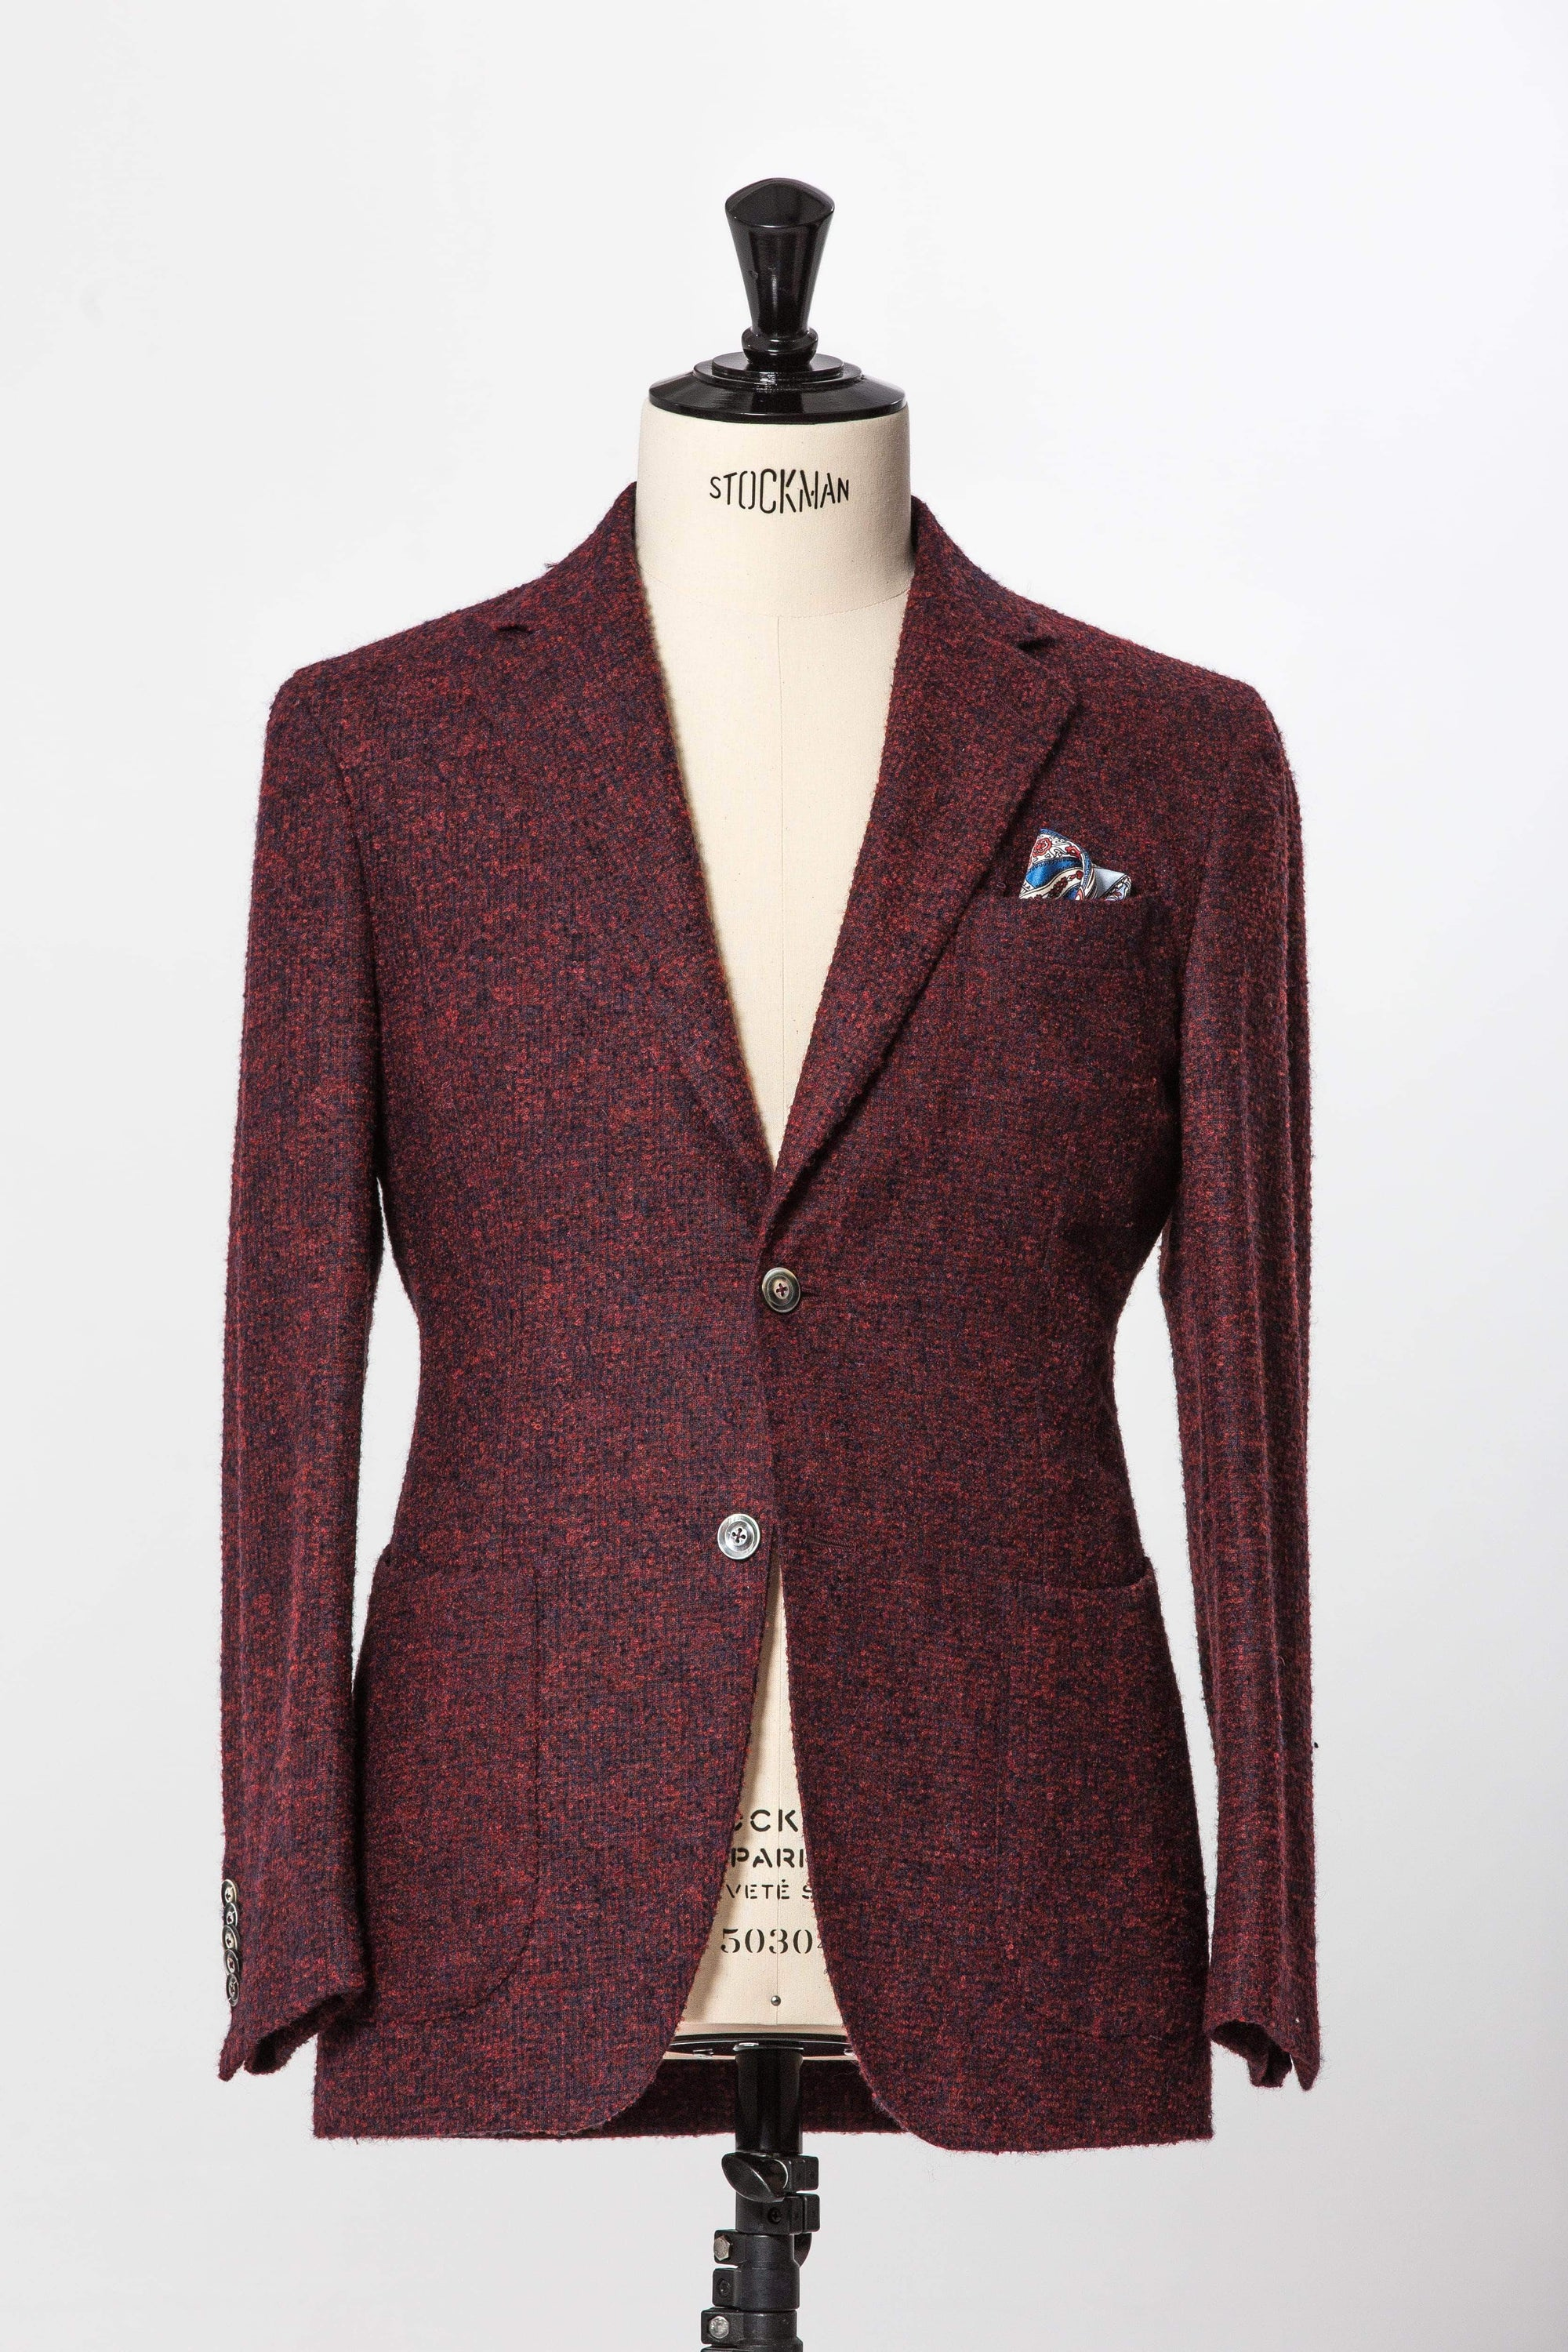 MEN'S BESPOKE BLAZER - SILVER LEVEL